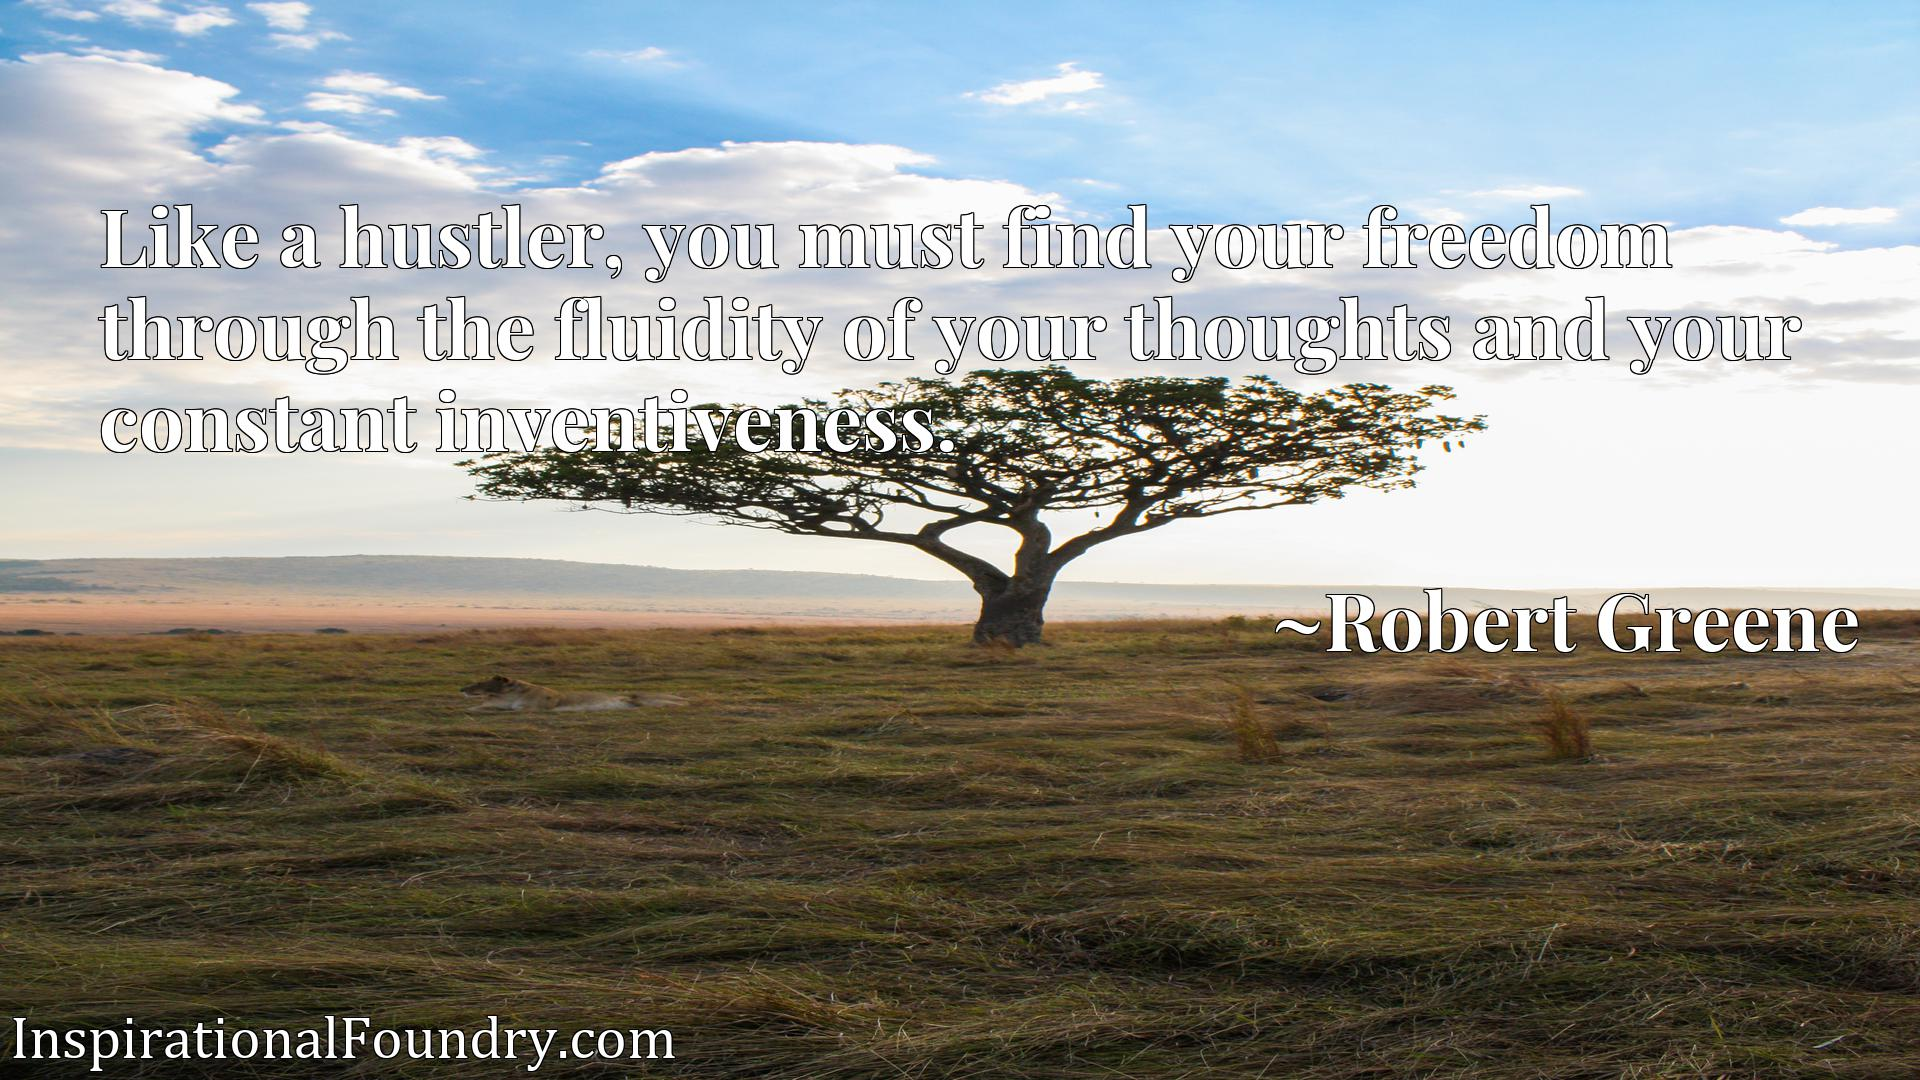 Quote Picture :Like a hustler, you must find your freedom through the fluidity of your thoughts and your constant inventiveness.